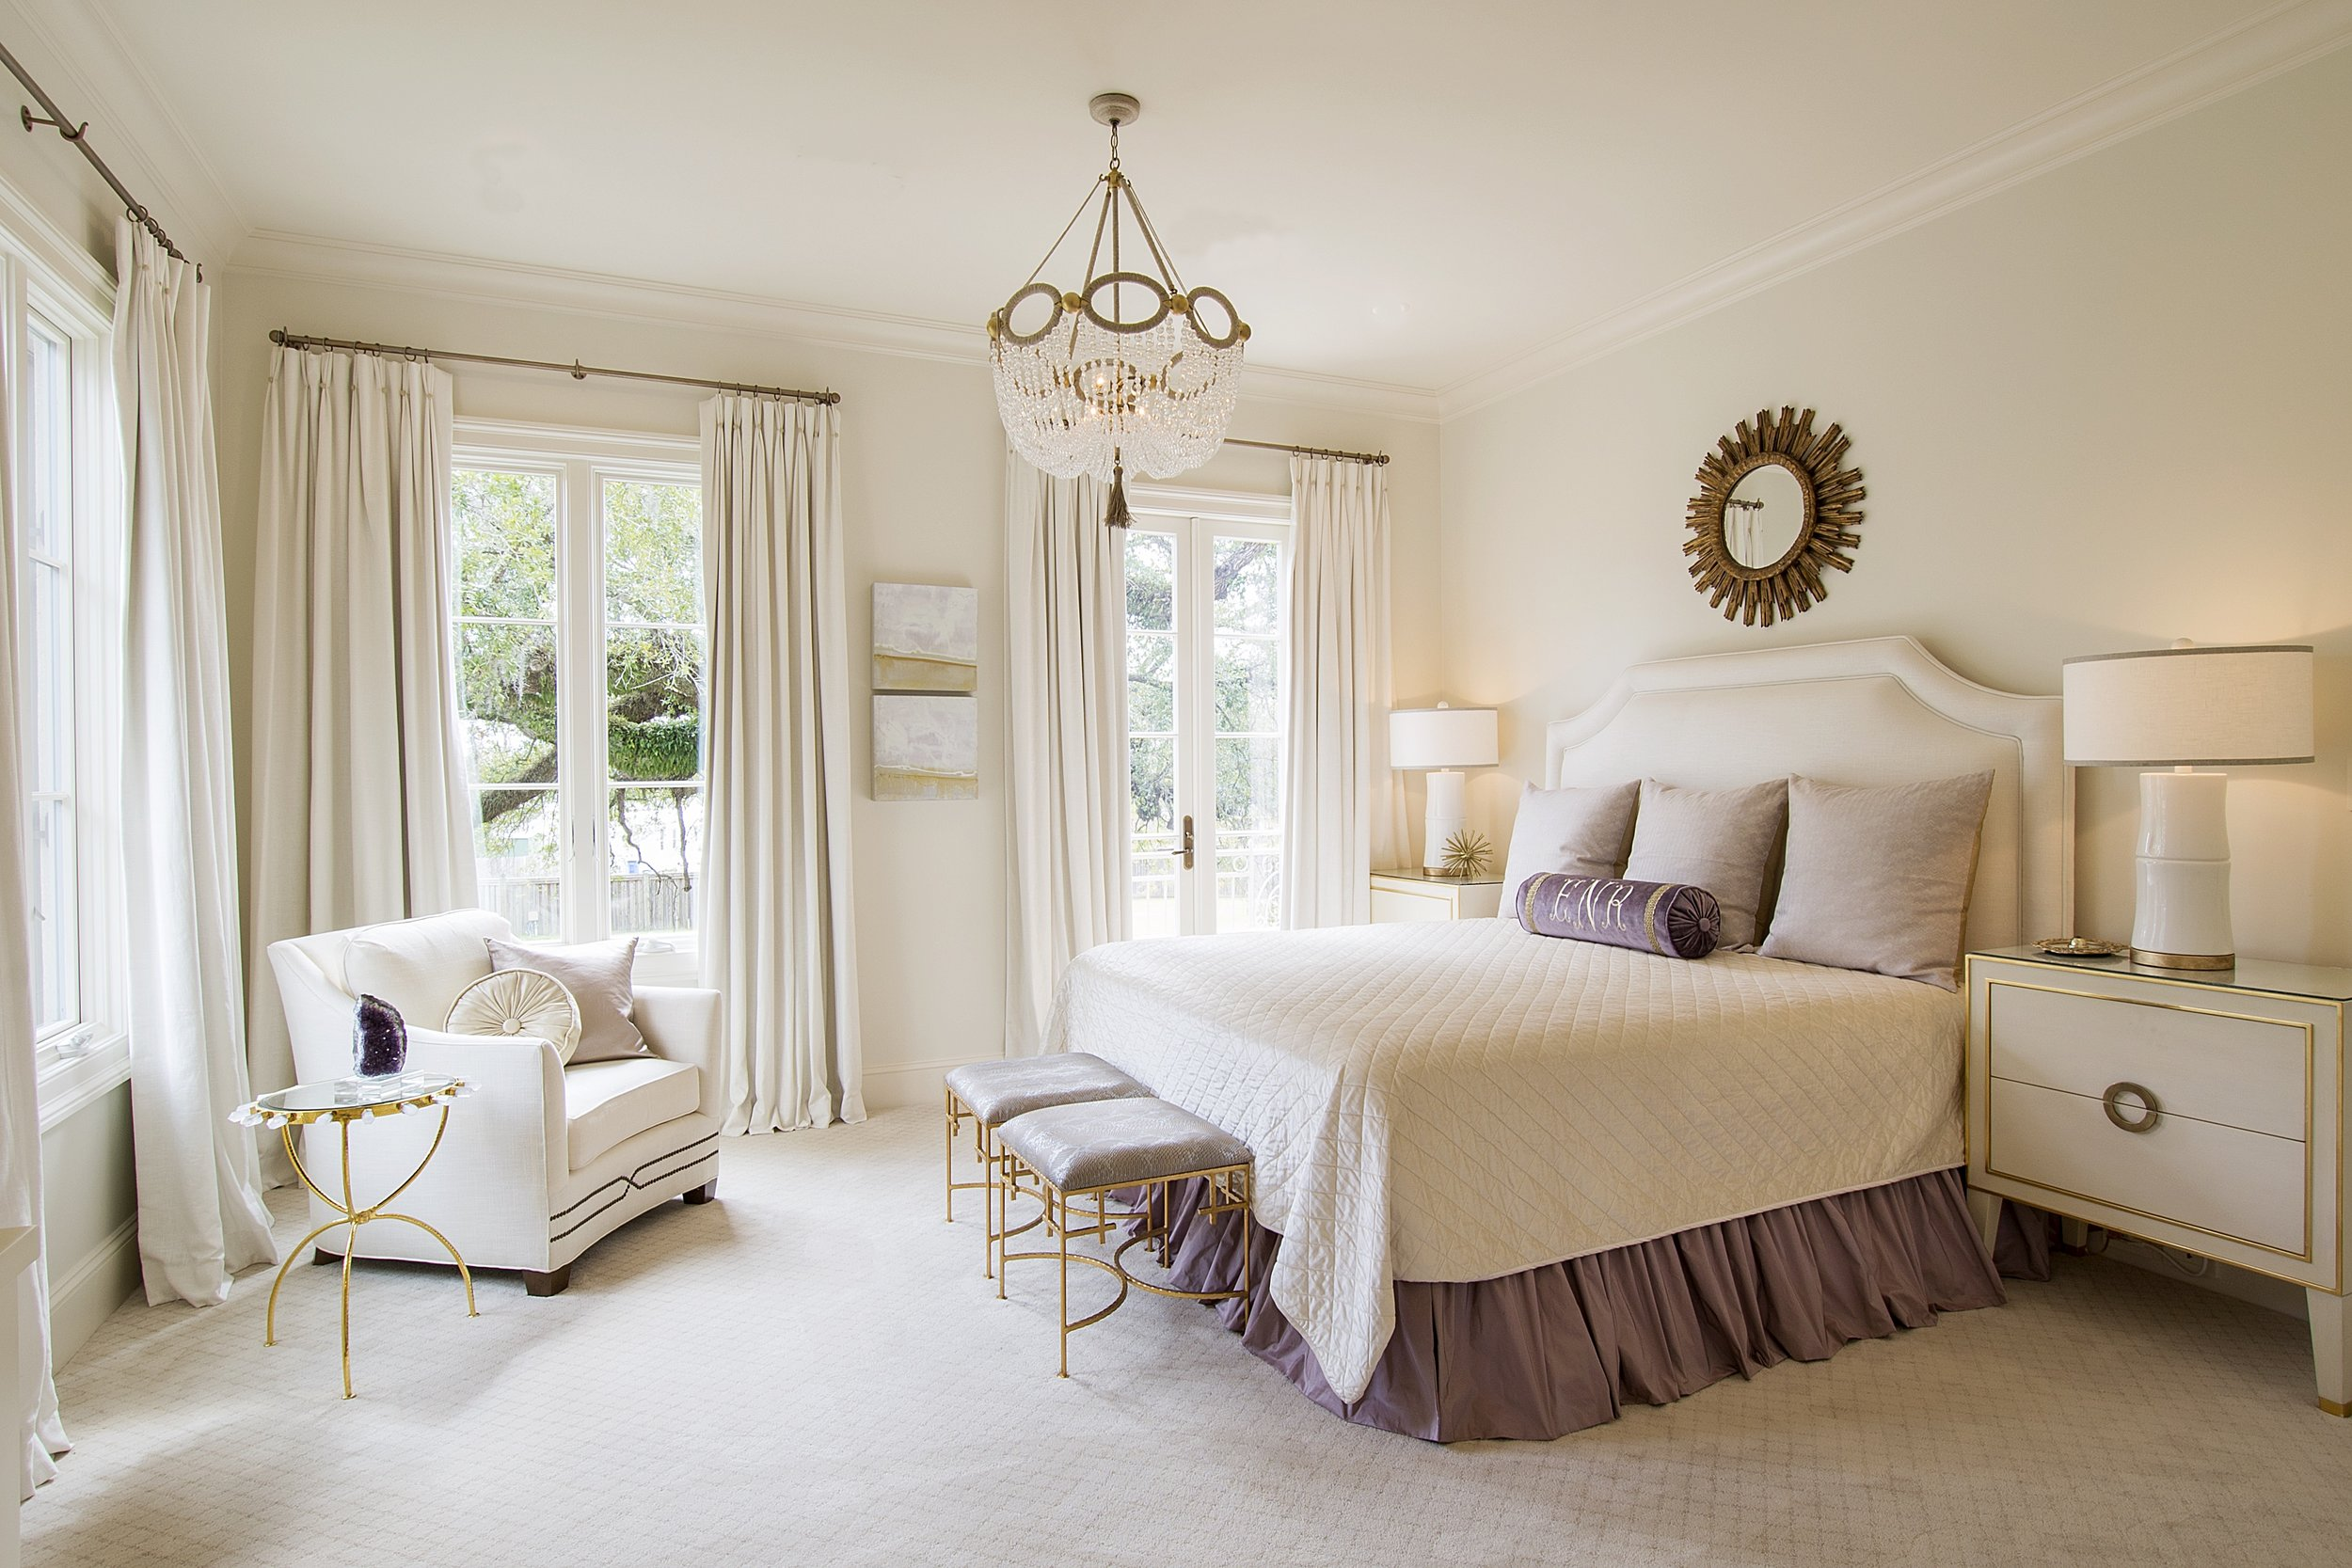 Bayou Teche Residence - Bedroom Design